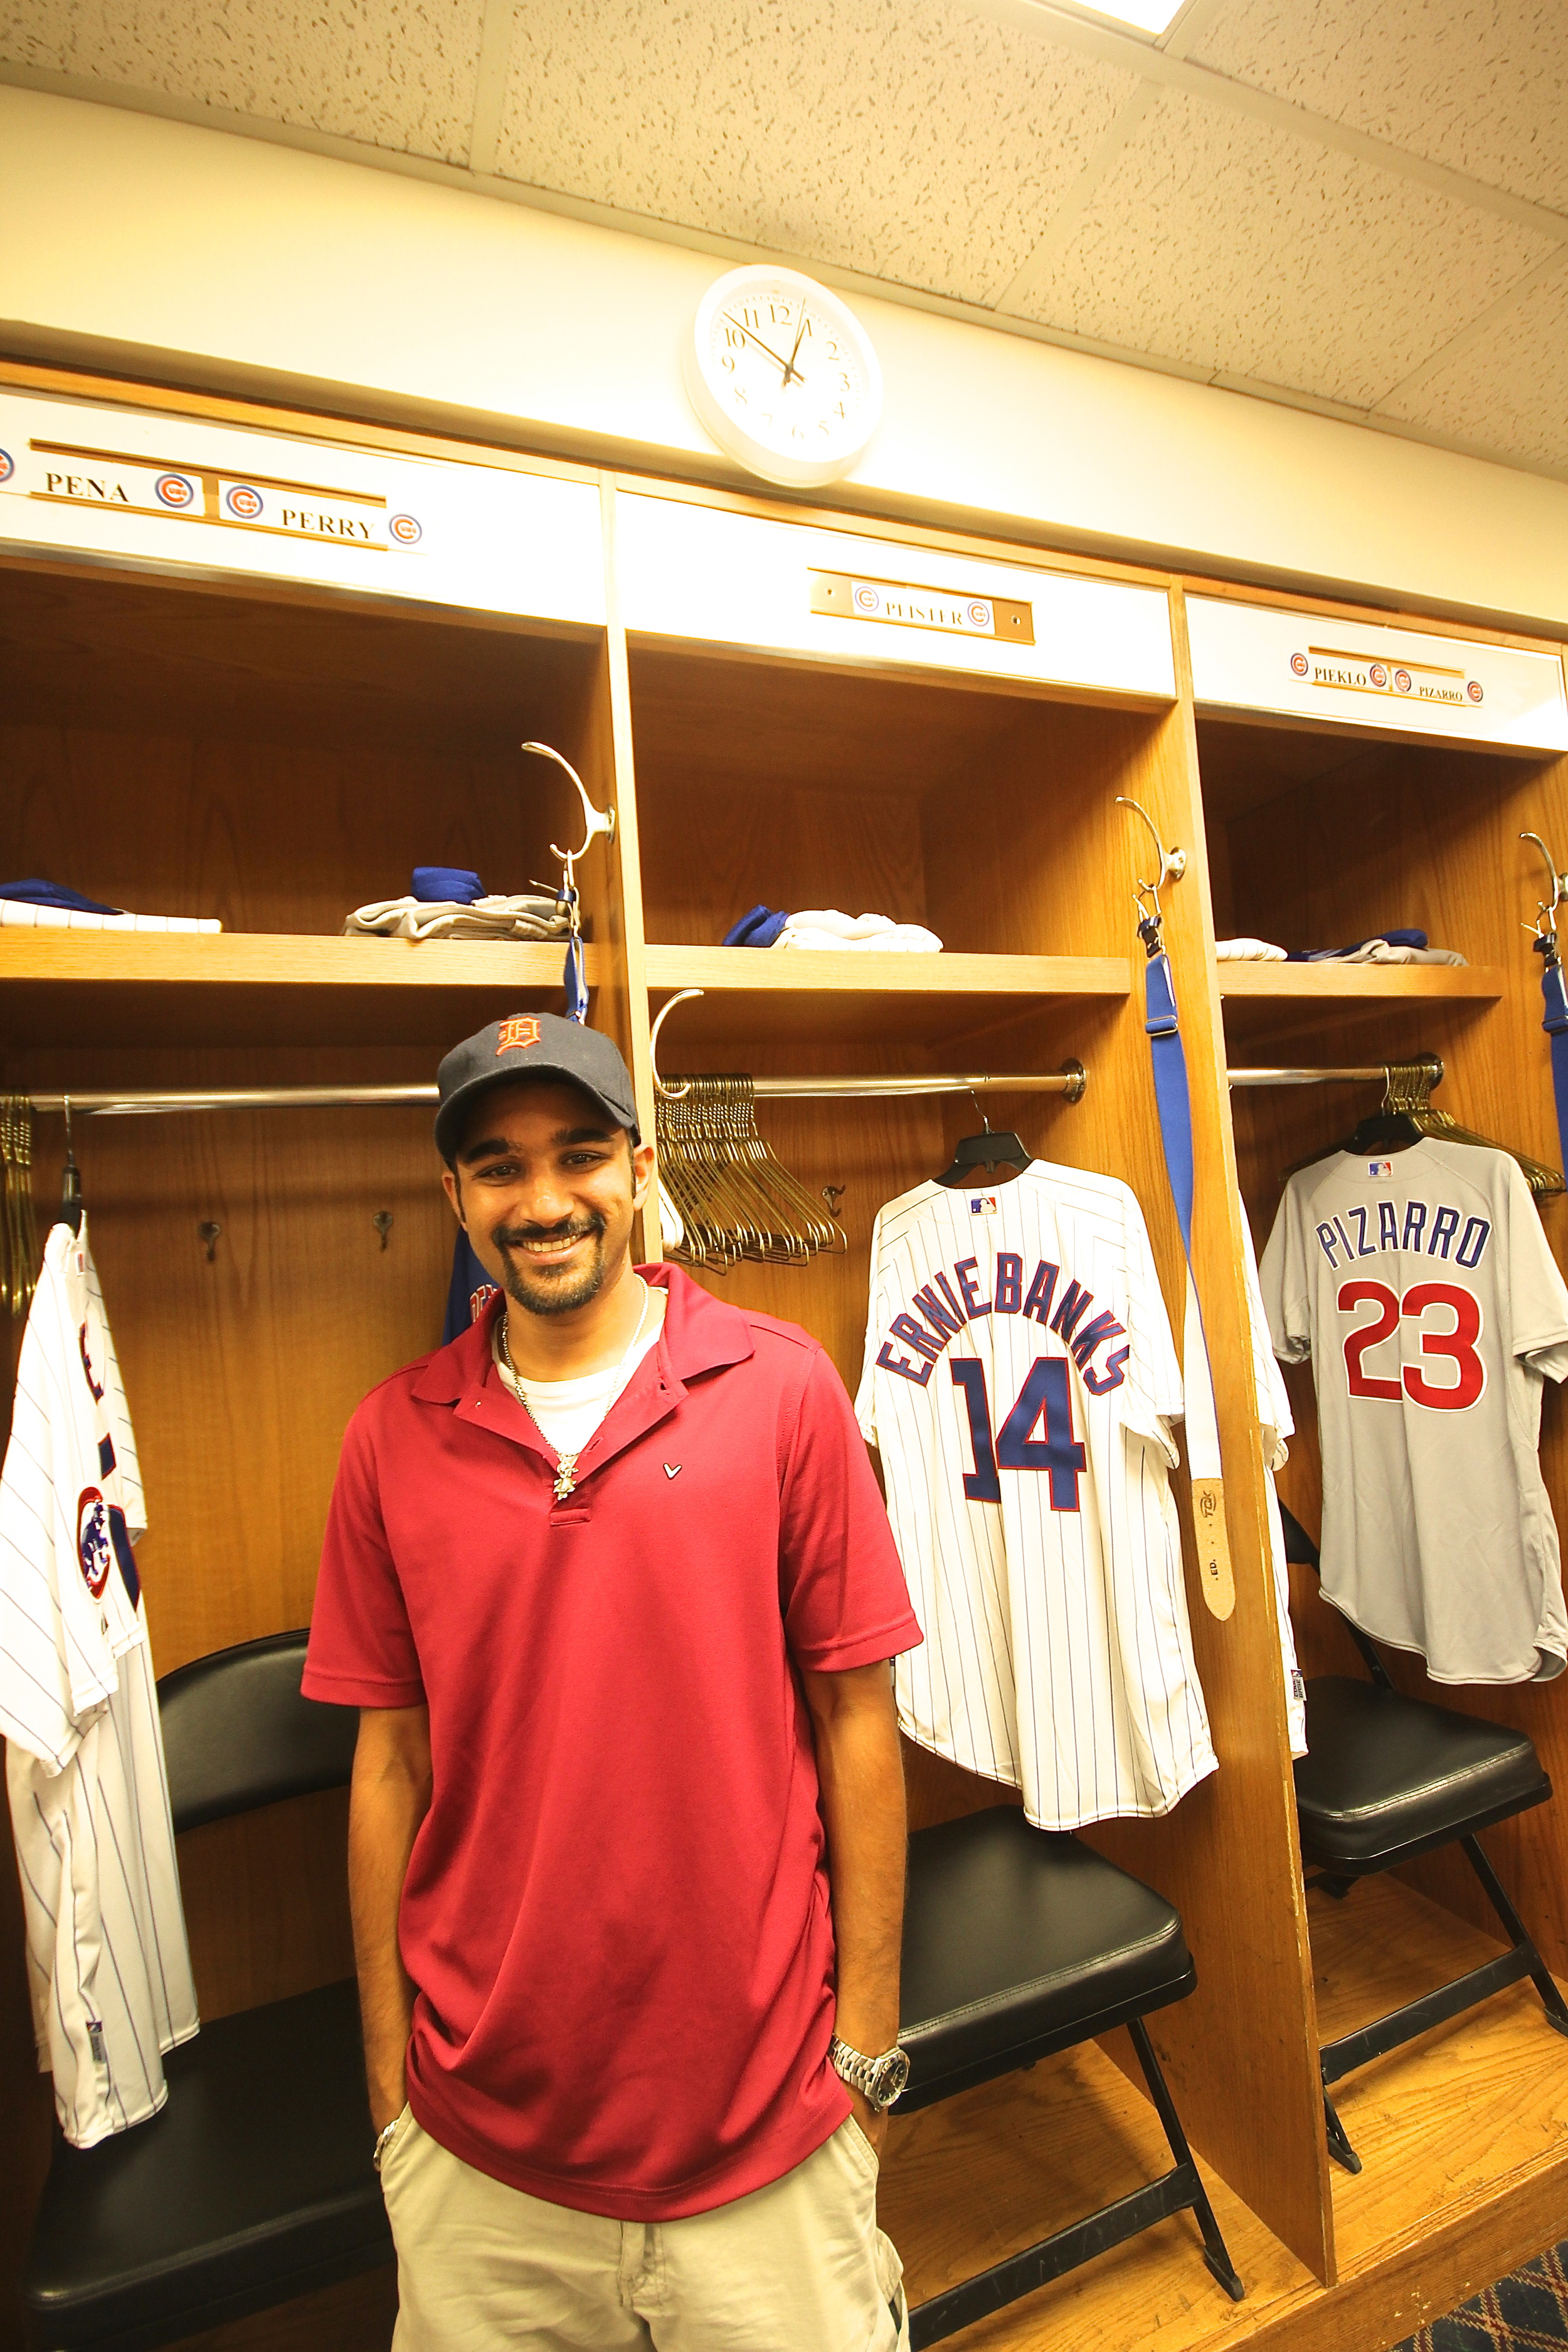 Me in the visitors clubhouse